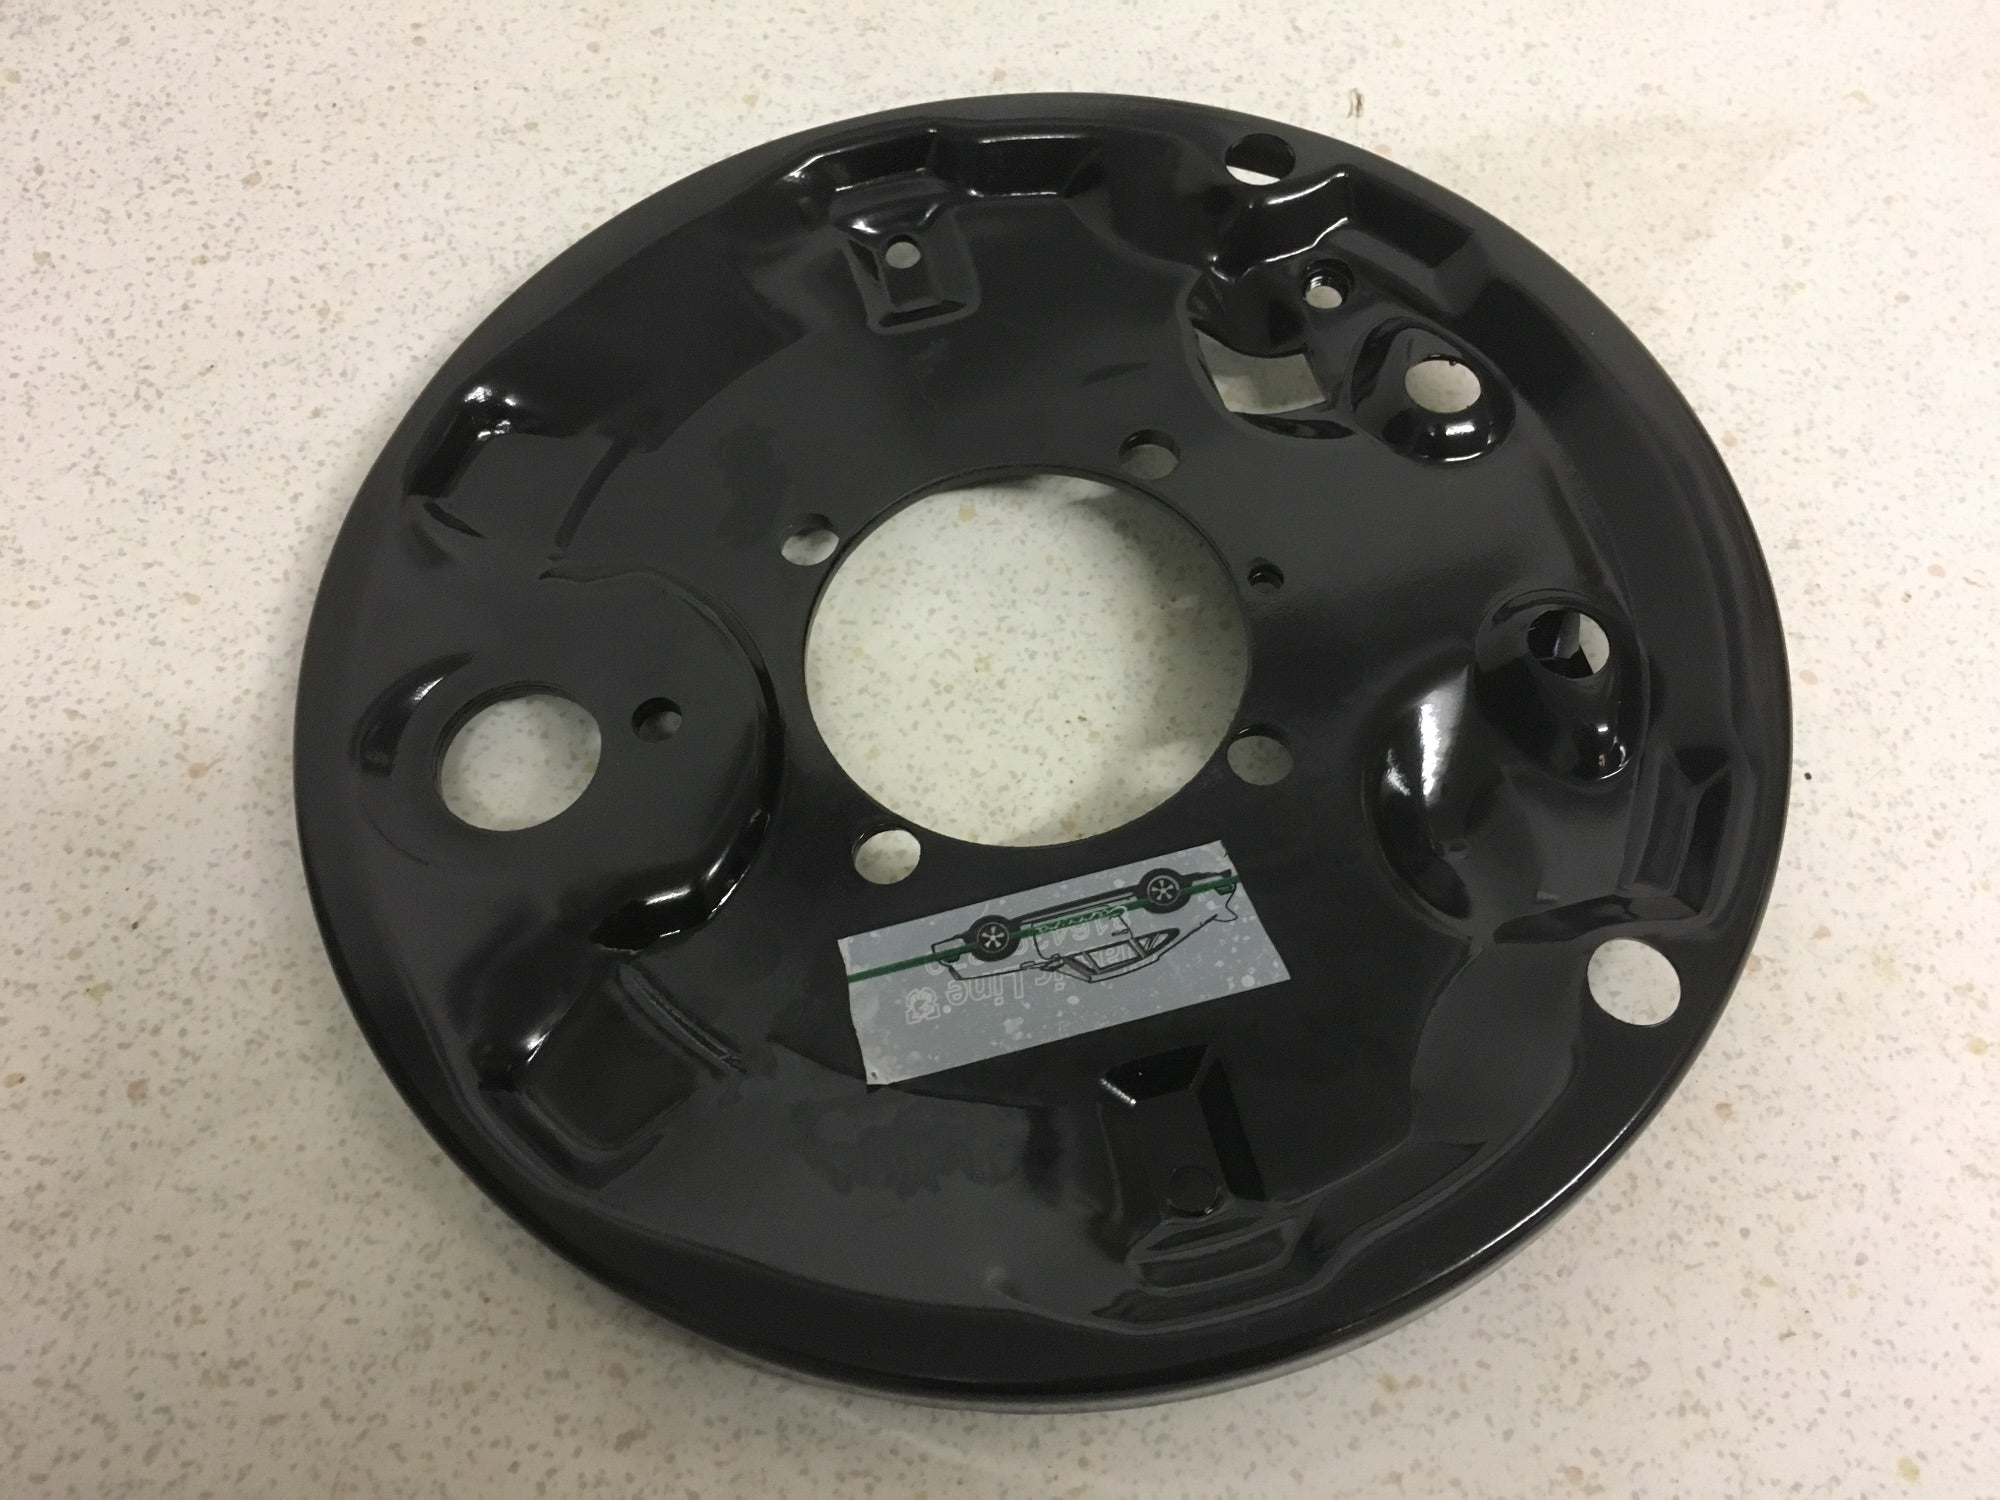 Porsche 924 rear brake backing plate (4 stud 2.0 car) LEFT 113 609 439 - Porsche Spares UK Ltd